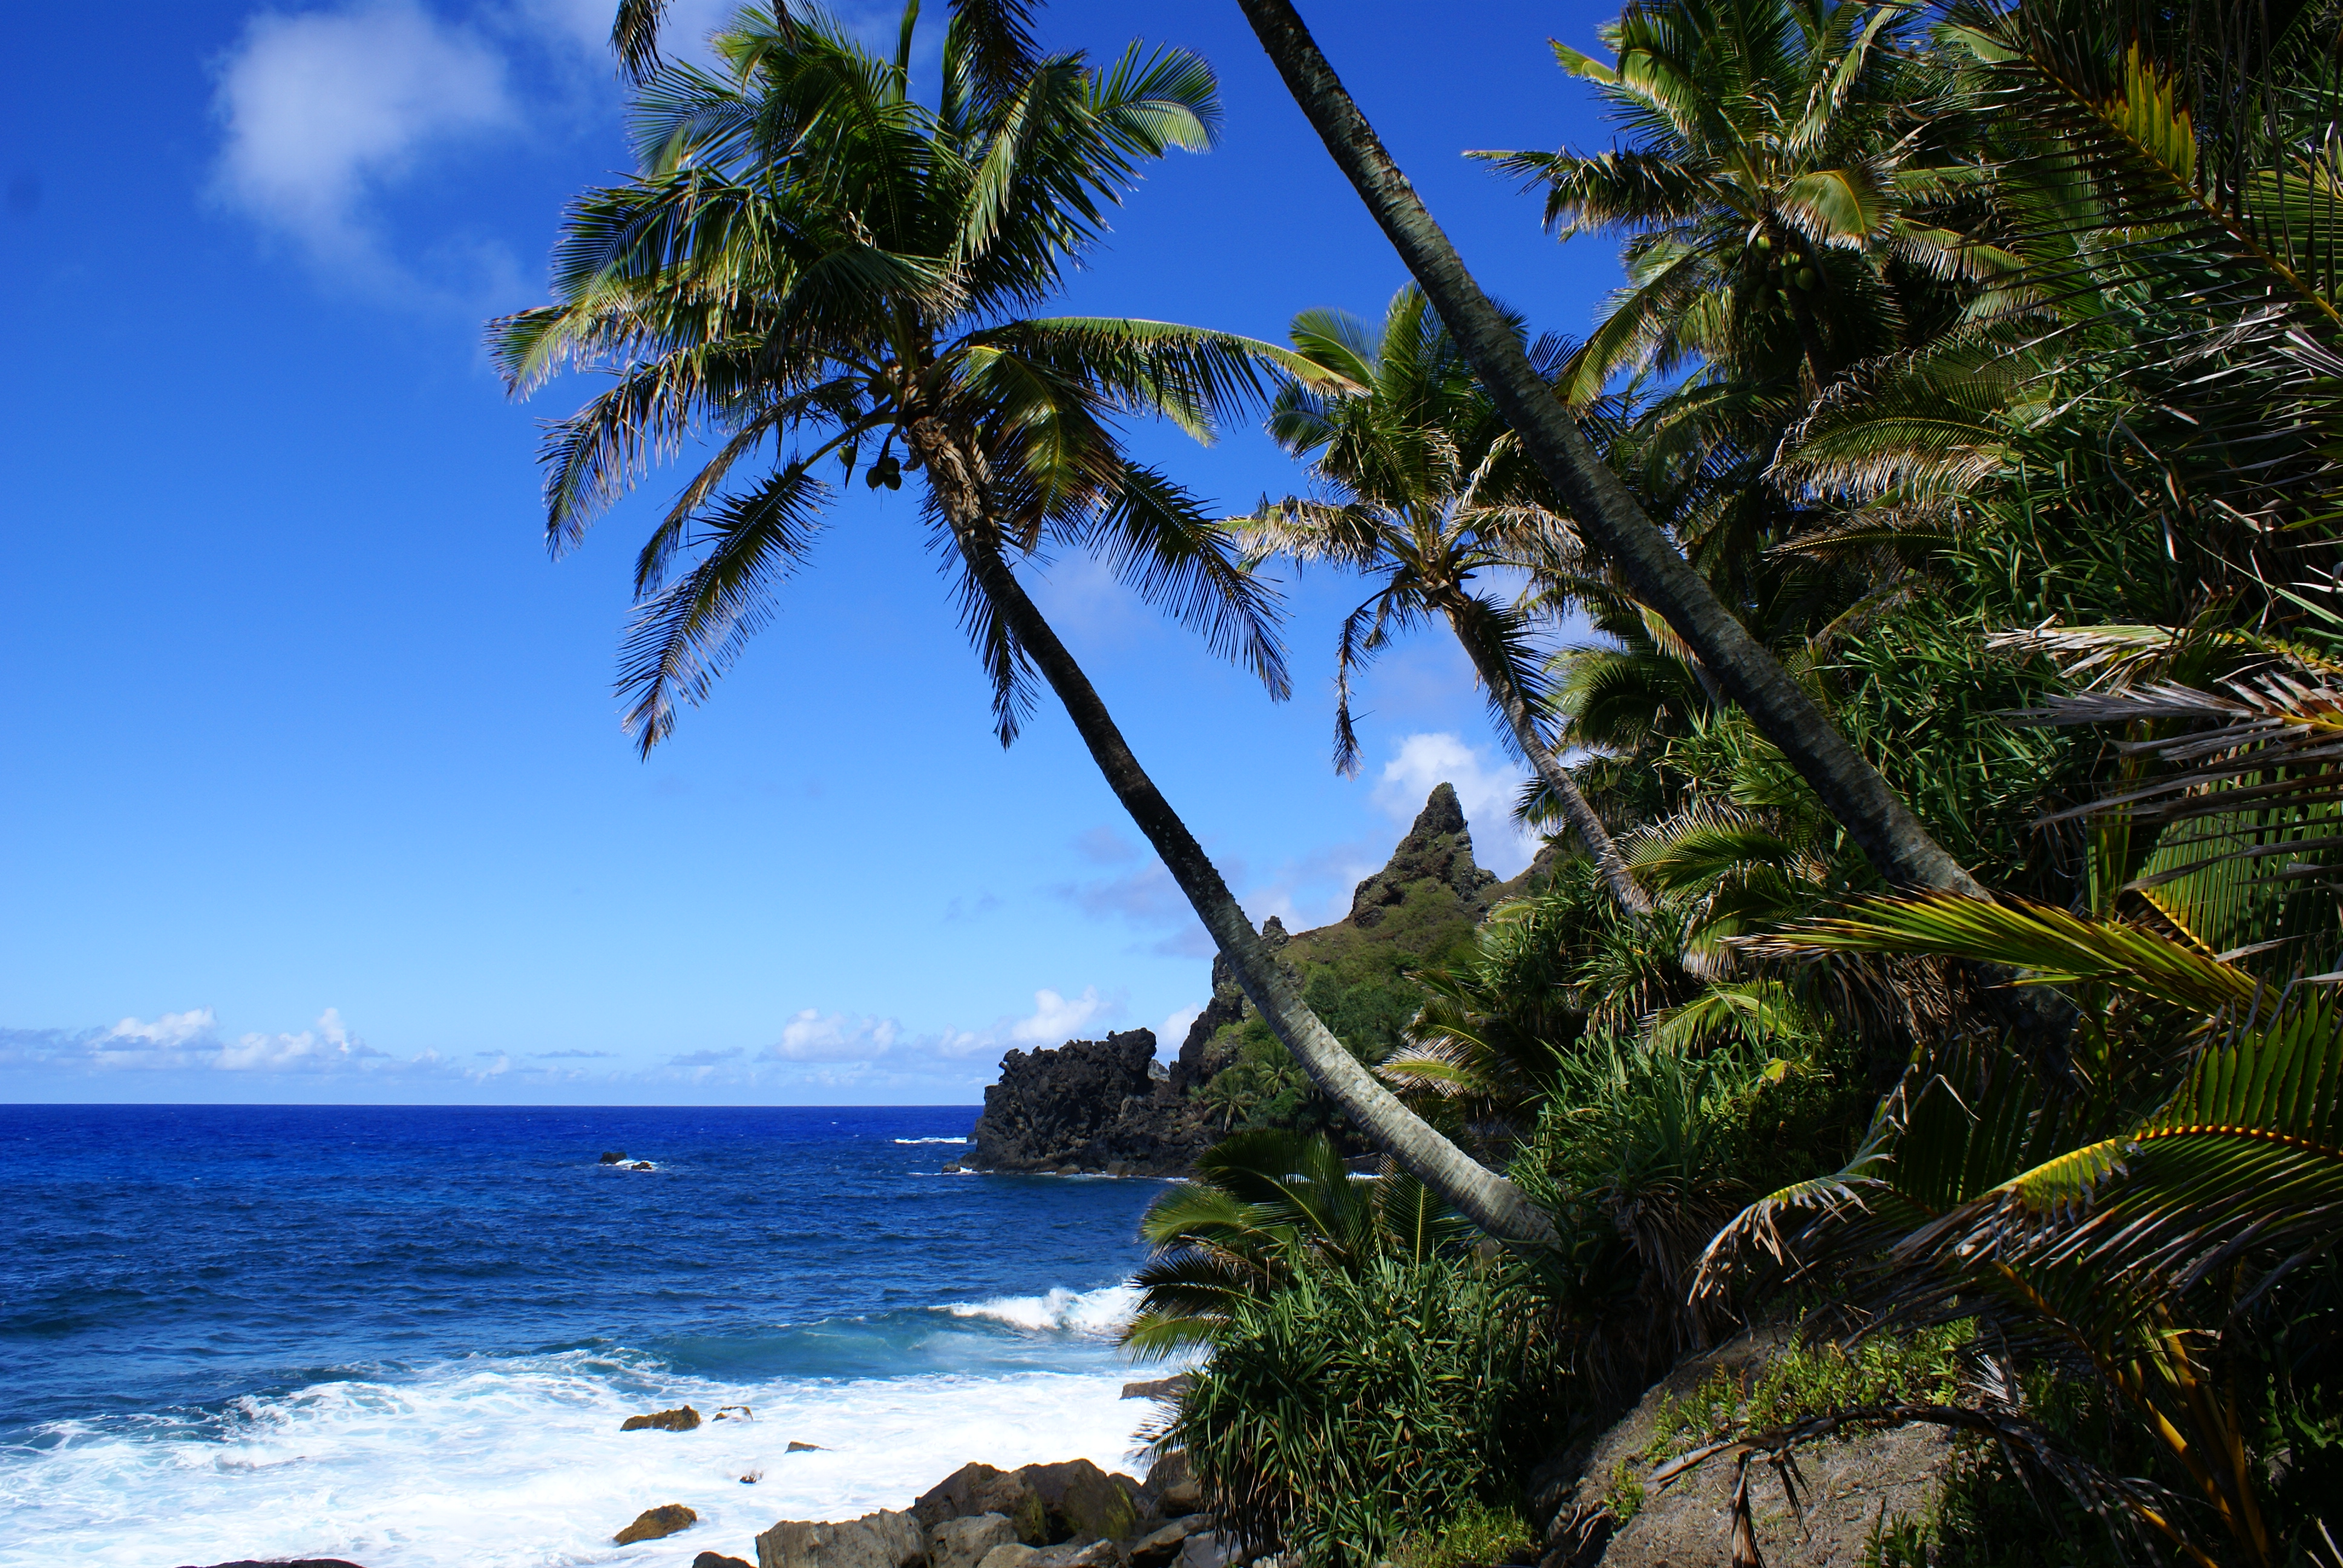 Rugged coastline of Pitcairn Island - Photo Credit: Andrew Christian